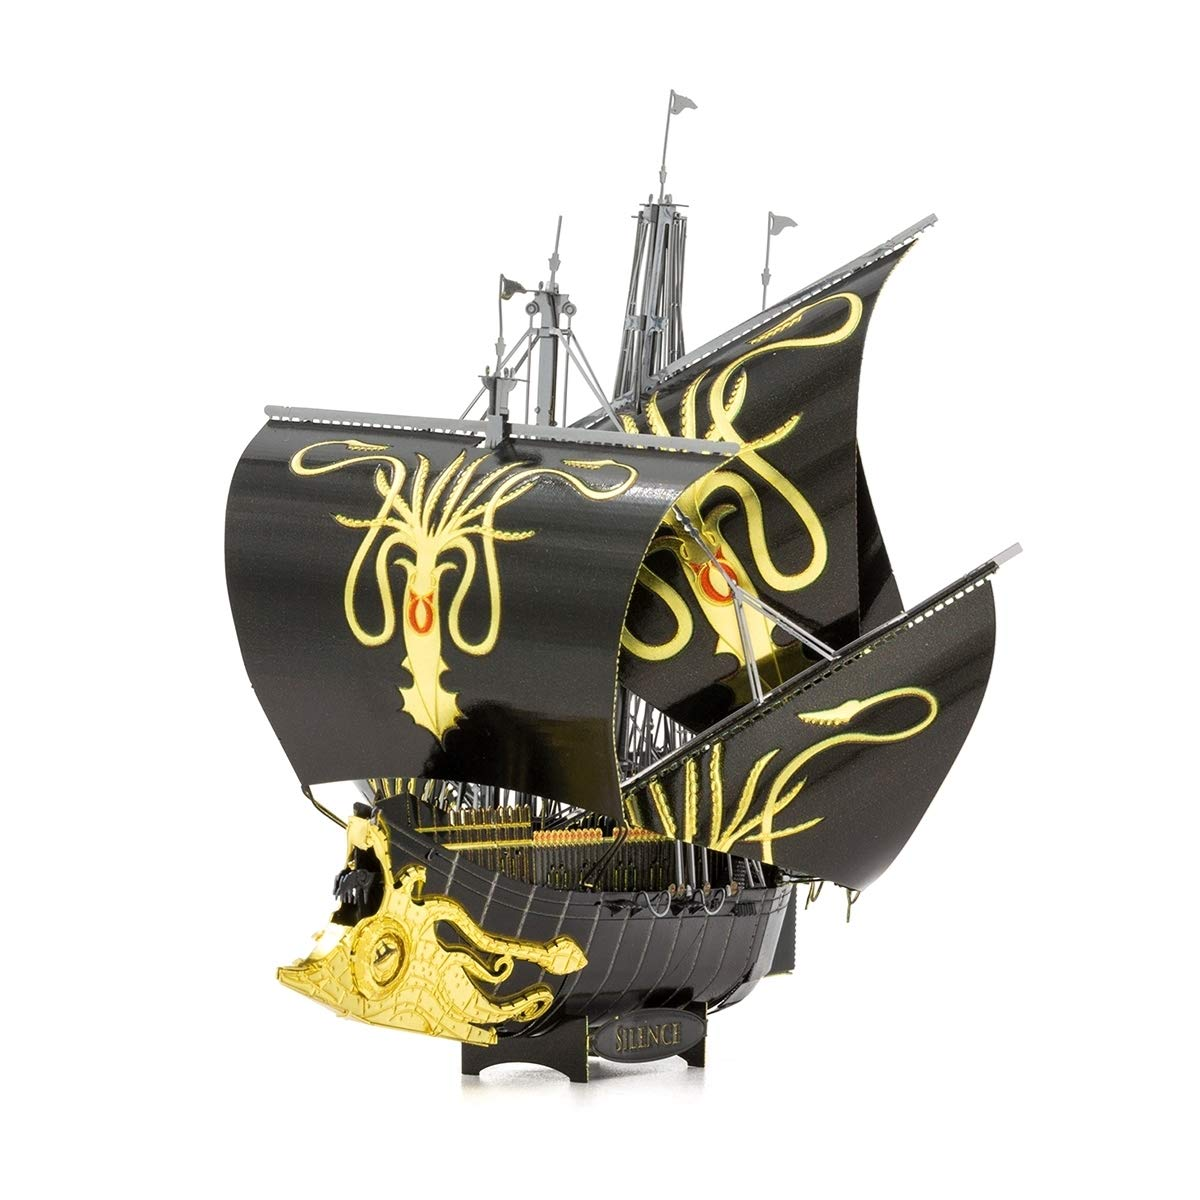 Fascinations Metal Earth ICONX Game of Thrones Silence 3D Metal Model Kit